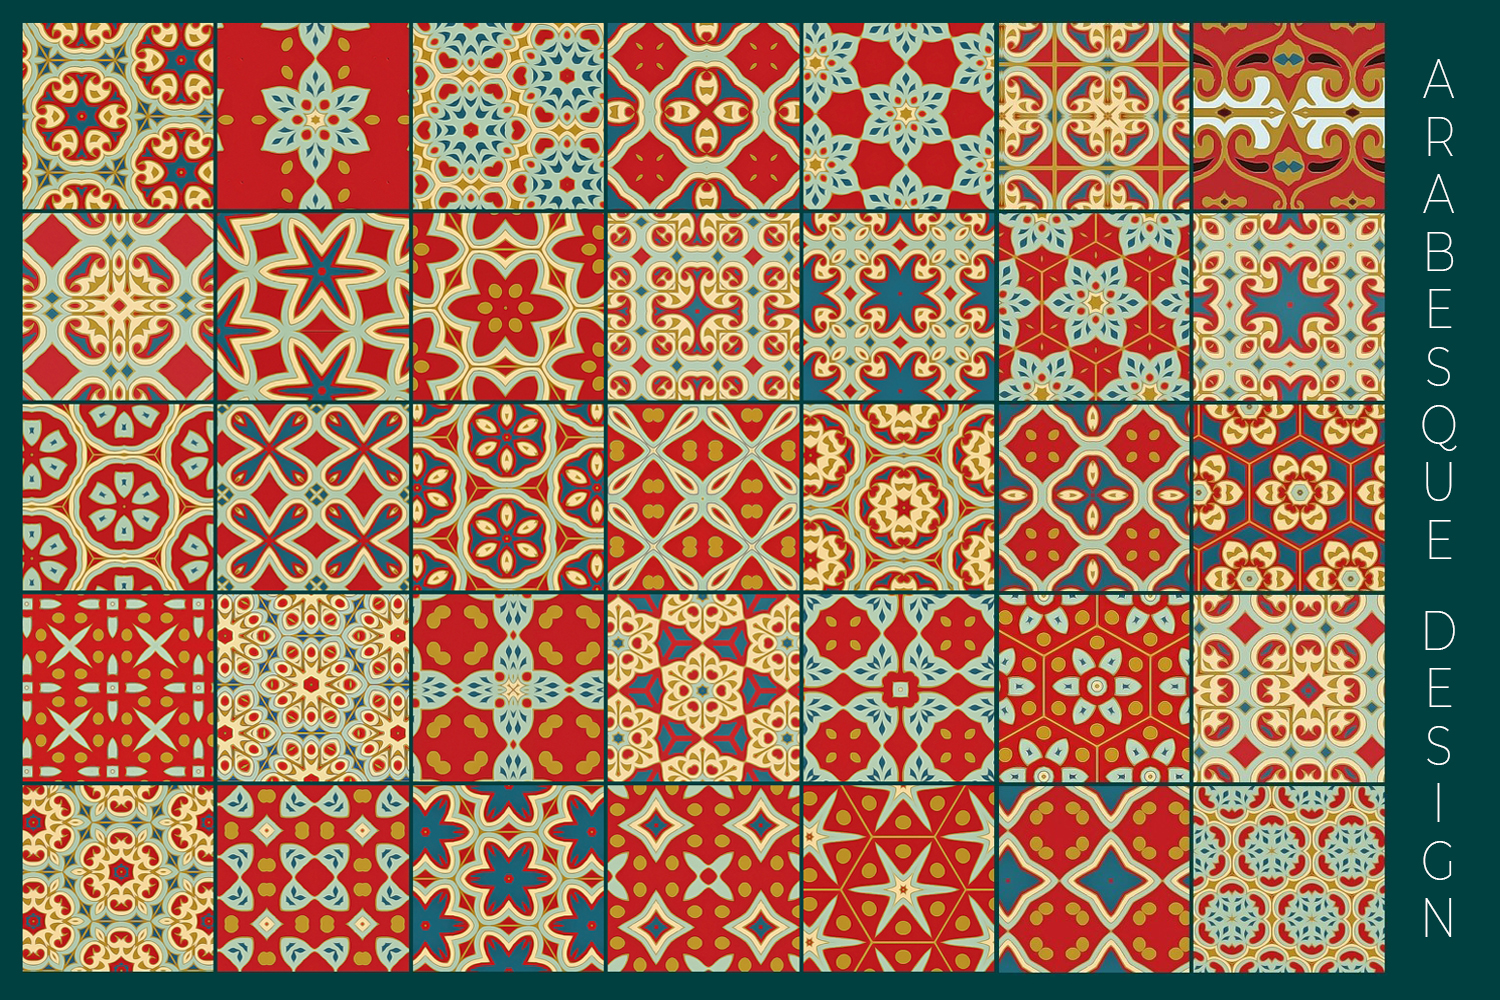 38 Arabesque Papers JPG & 20 Seamless Tiles PS Patterns PAT example image 18